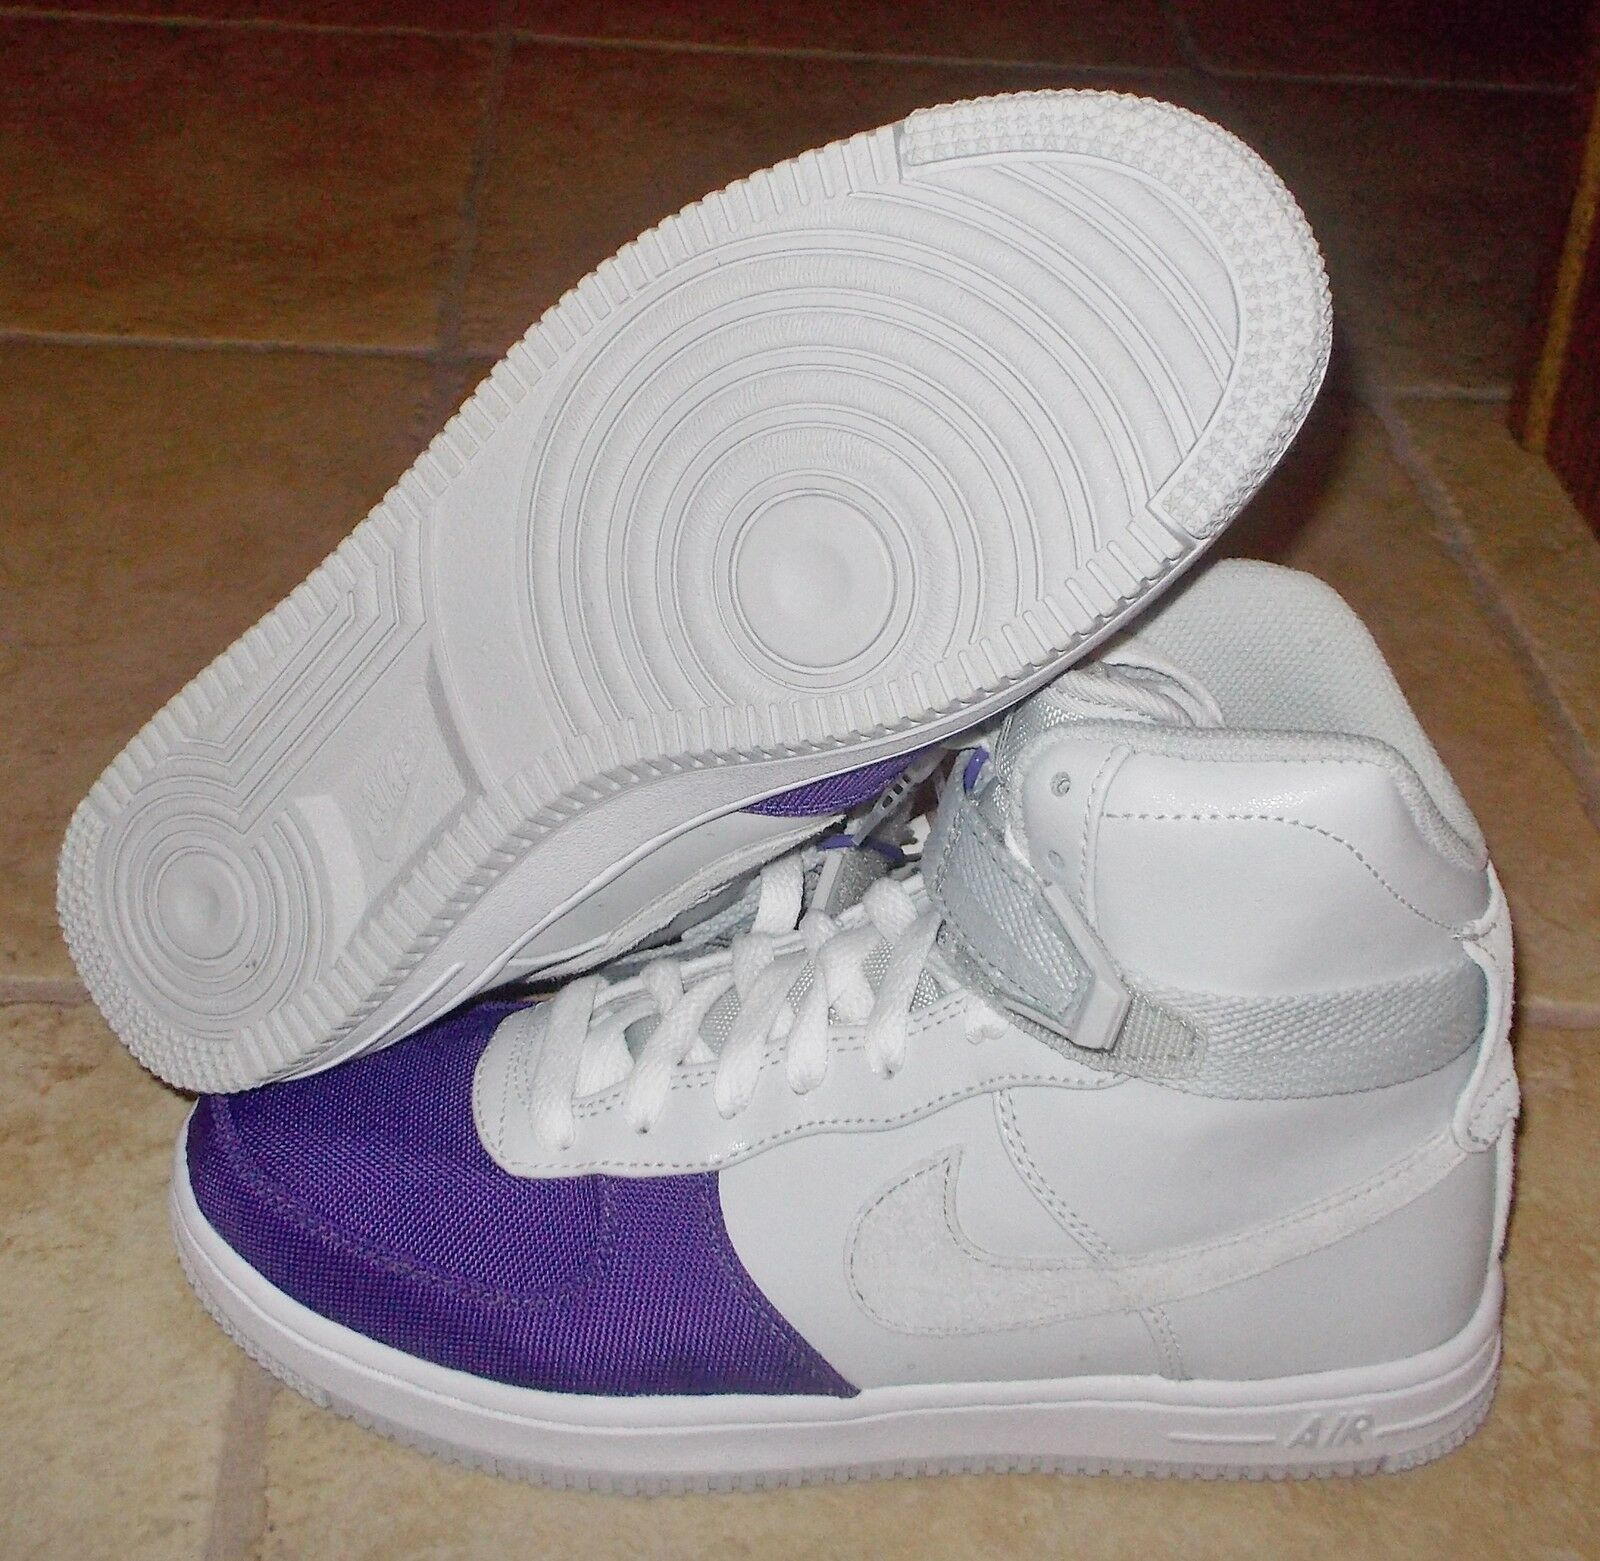 NEW NIKE AIR FEATHER HI HIGH Womens 6.5 Gray Purple force 1 LTD NR